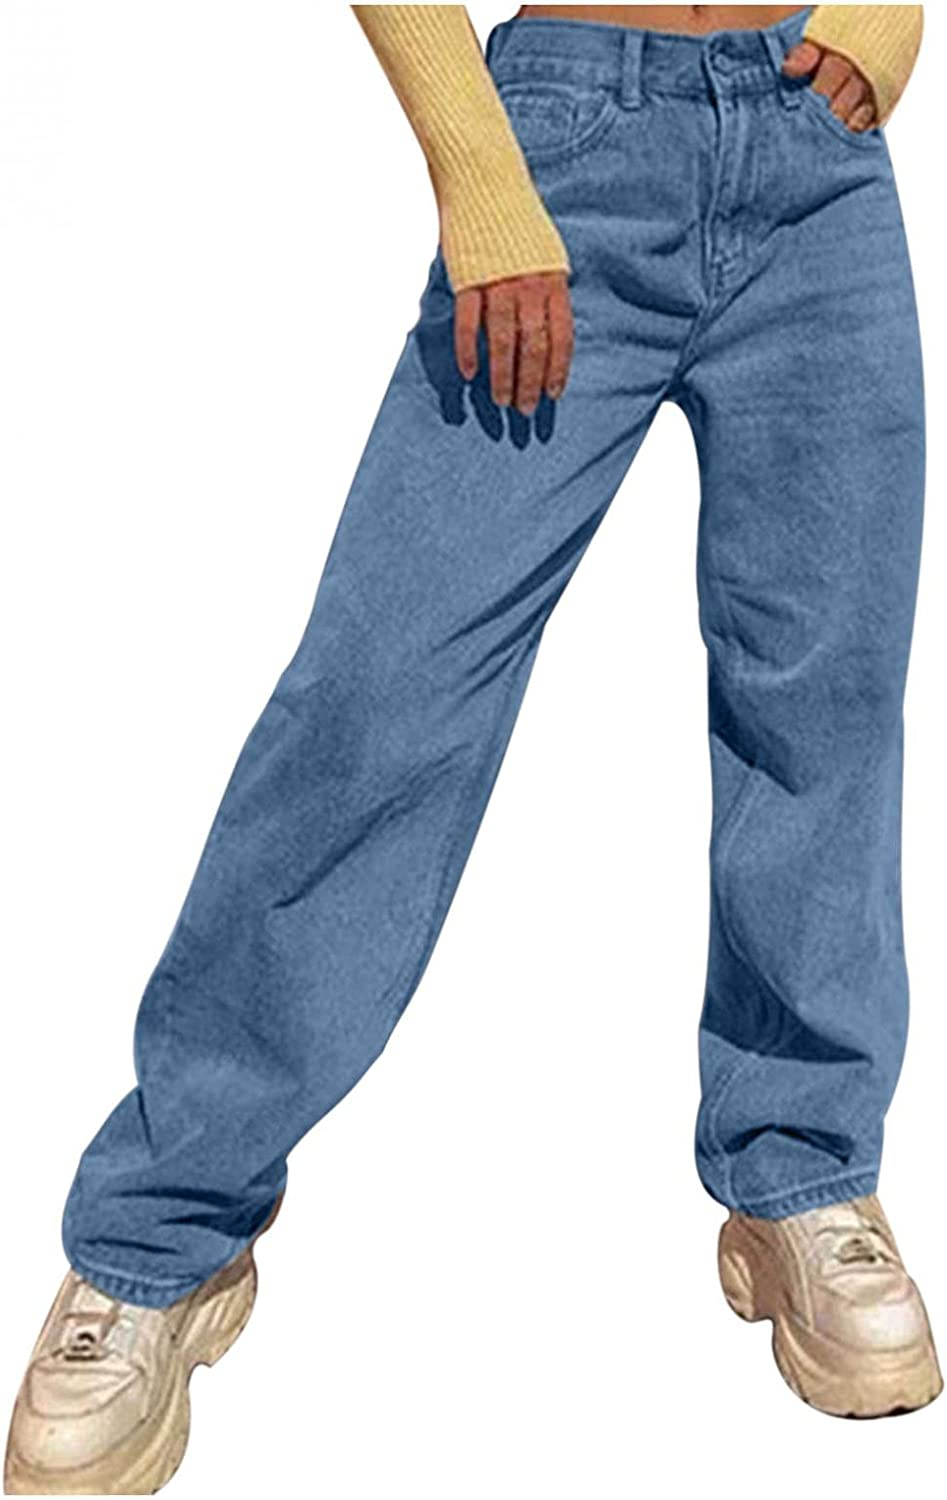 Dunacifa High Waisted Jeans for Women Distressed Baggy Boyfriends Jeans Straight Leg Streetwears Denim Pants with Pocket